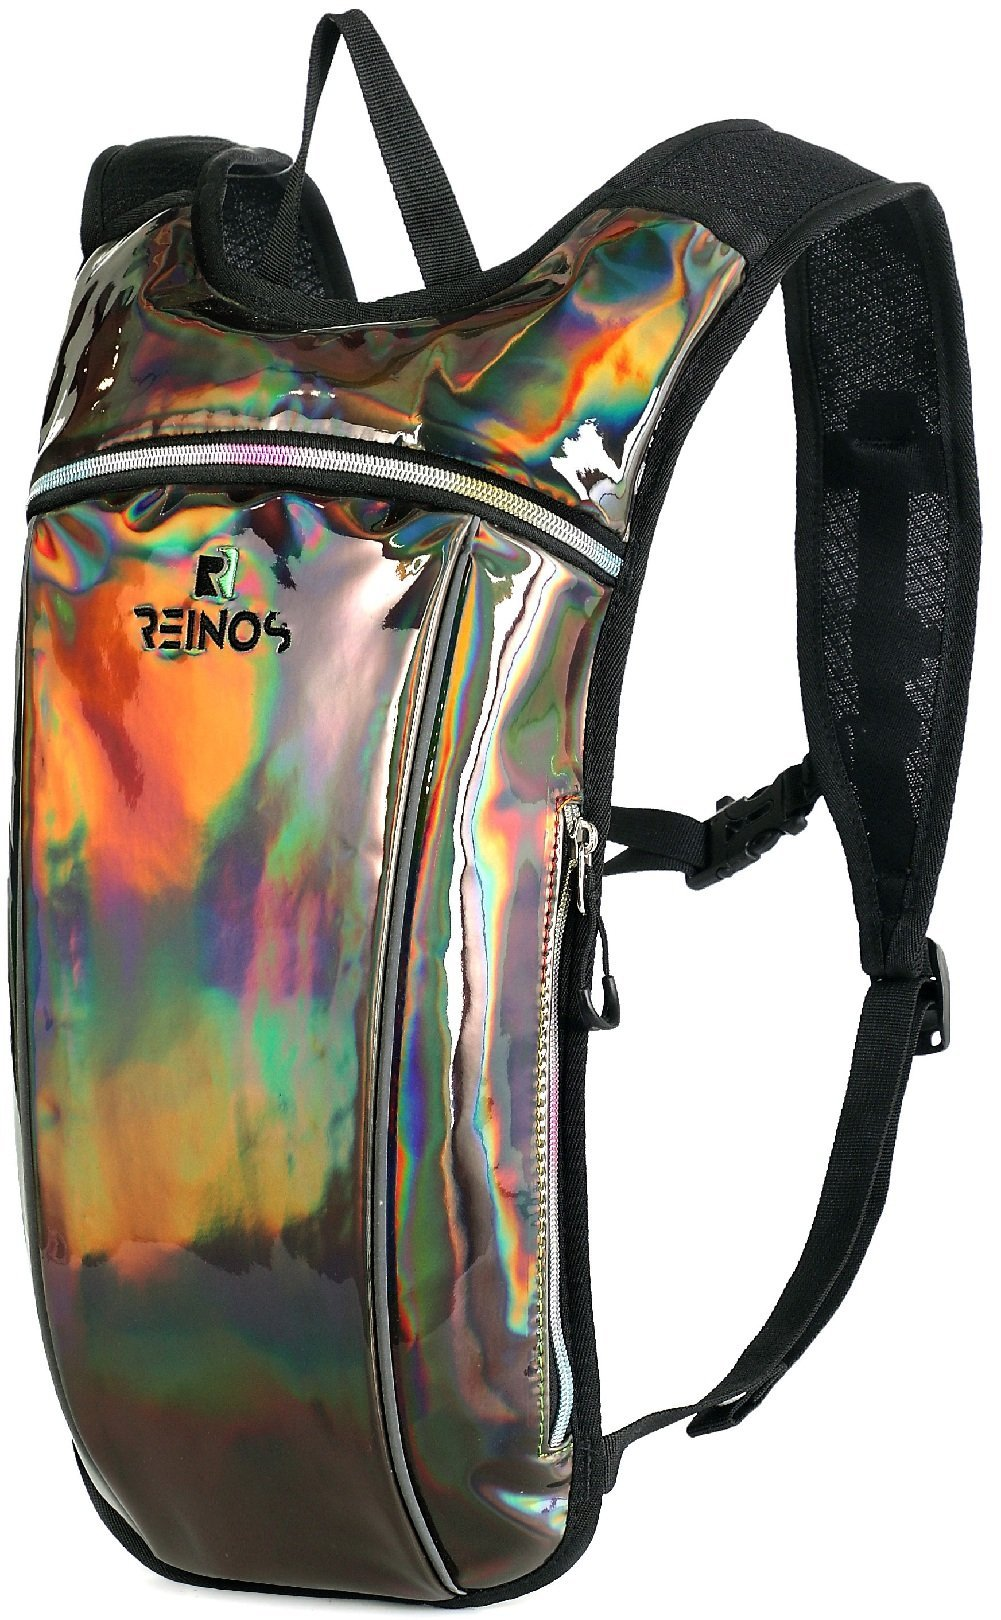 REINOS Hydration Backpack - Light Water Pack - 2L Water Bladder Included for Running, Hiking, Biking, Festivals, Raves (Gunmetal)